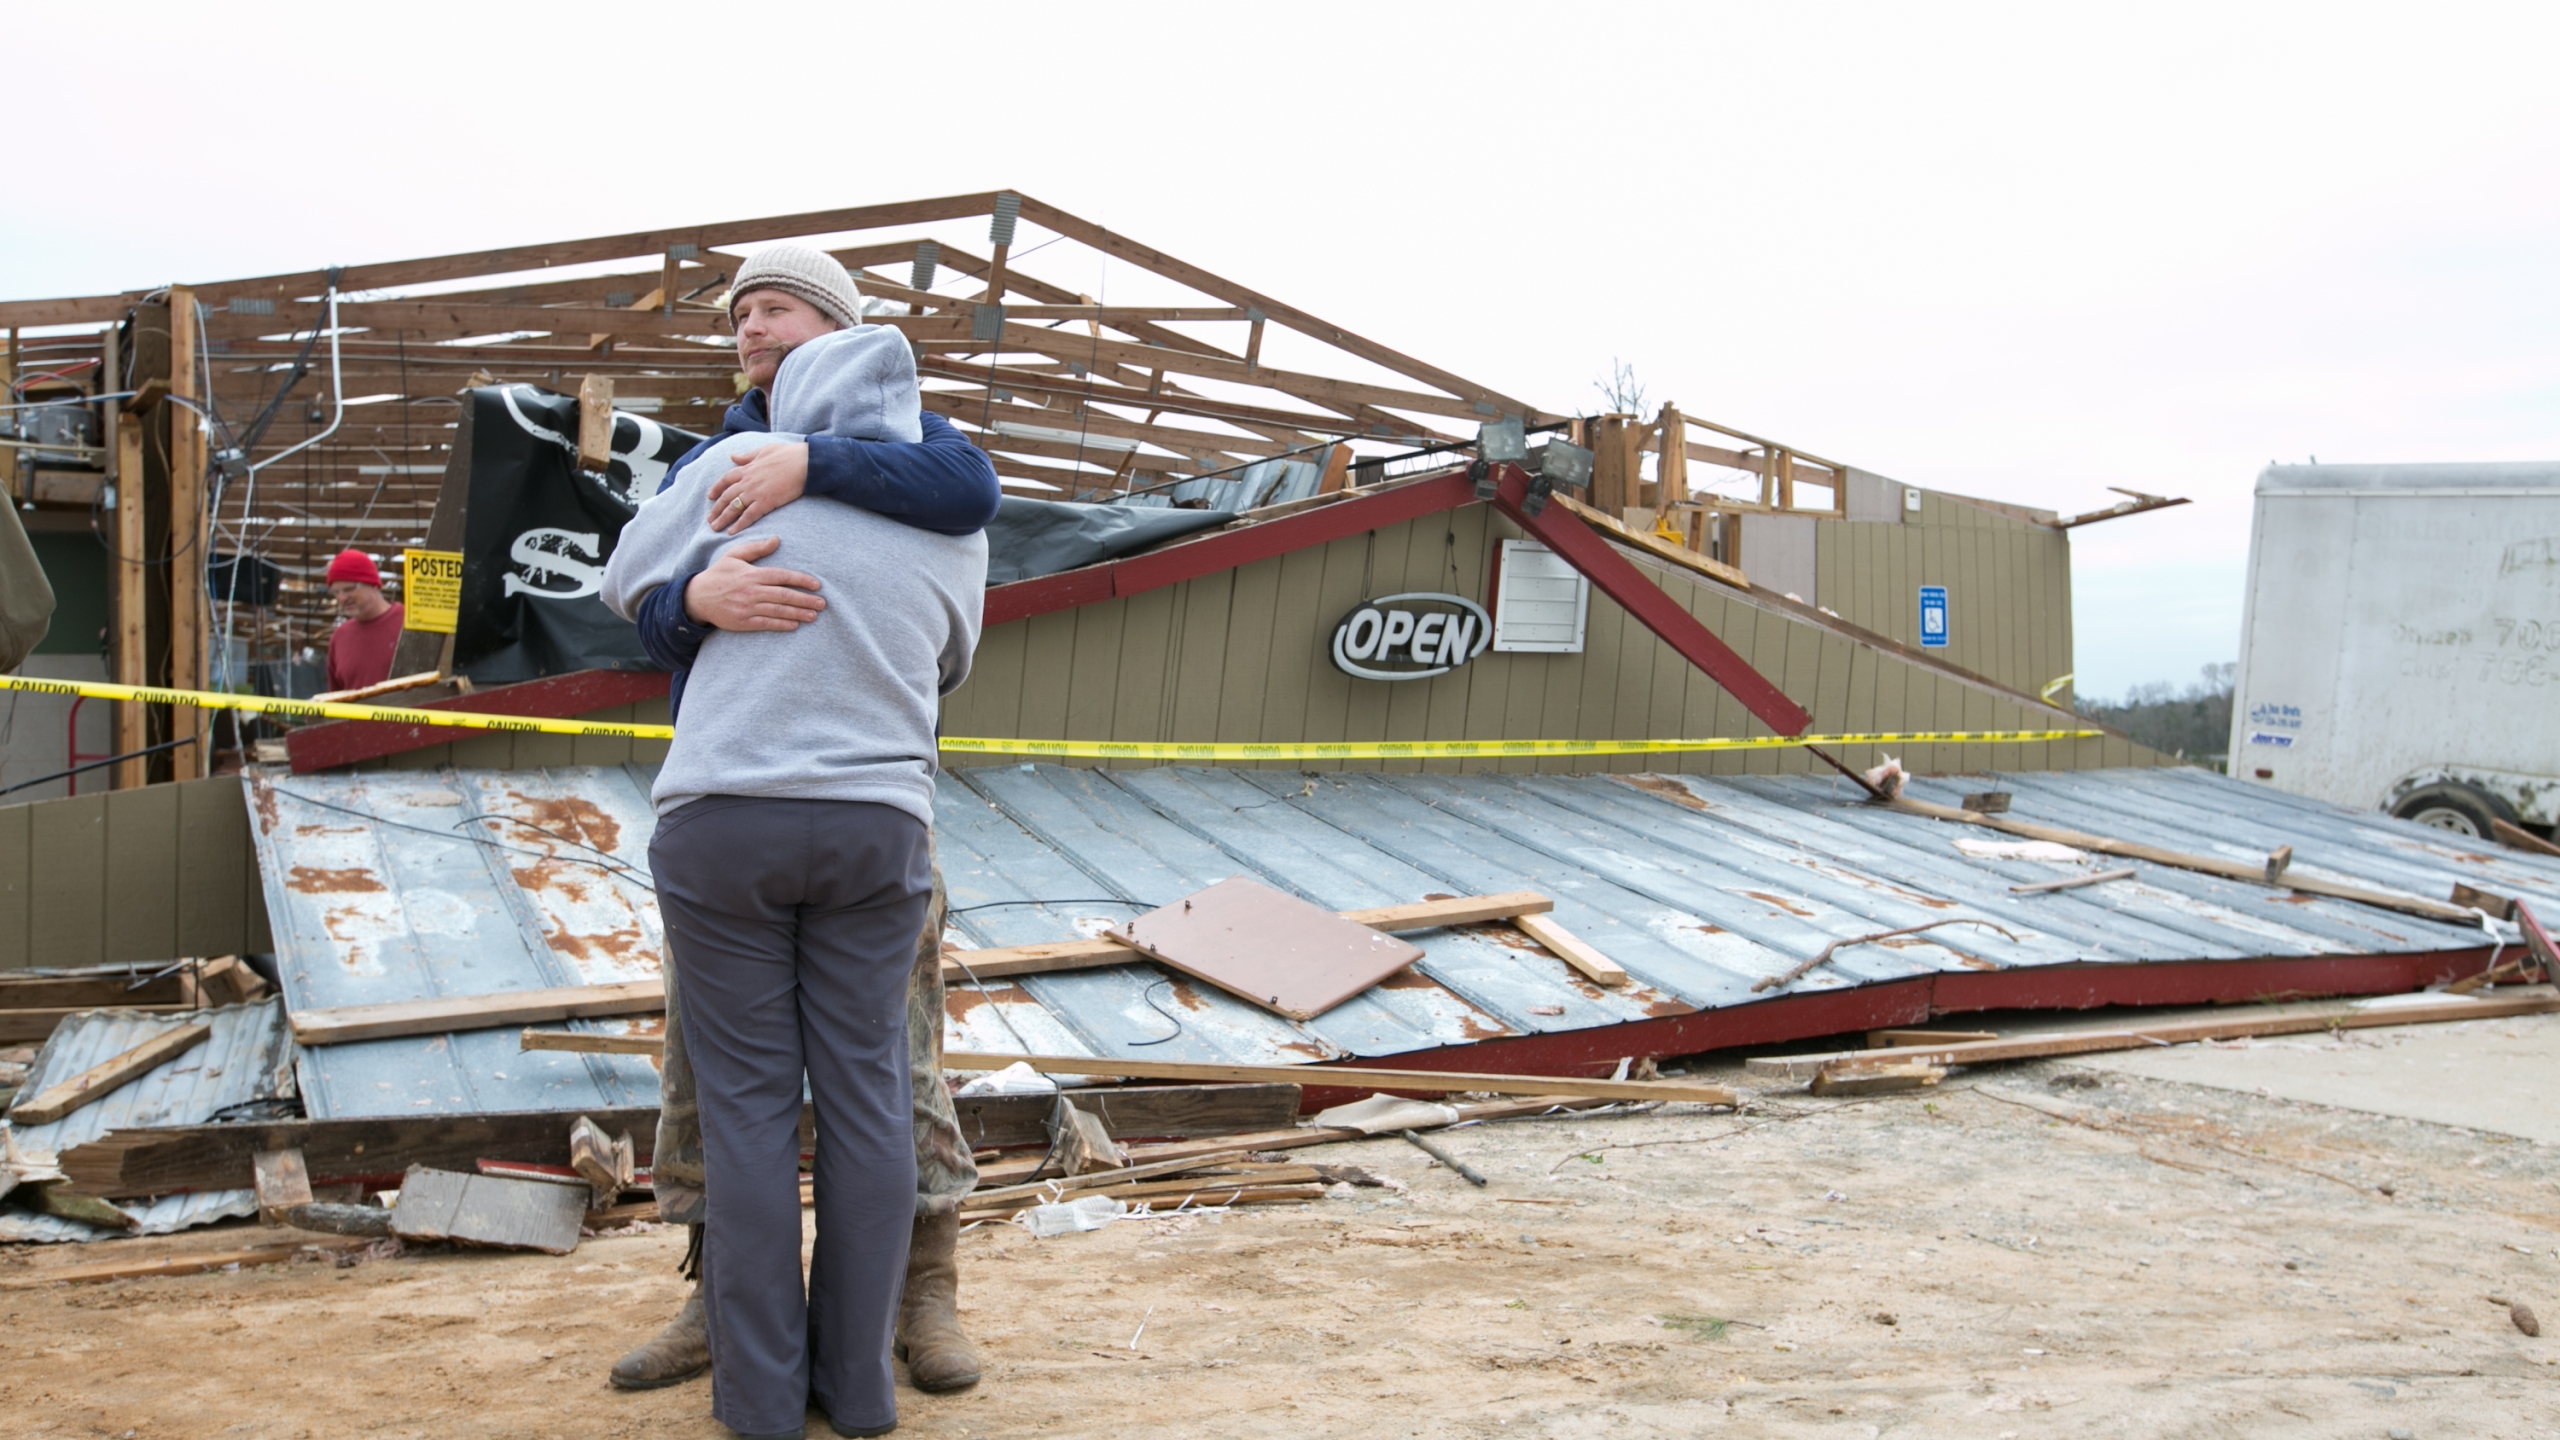 Gabe and Brandi O'Neal embrace outside of the Buck Wild Saloon on March 4, 2019, after it was destroyed by a tornado in Smith Station, Alabama. (Credit: Jessica McGowan / Getty Images)